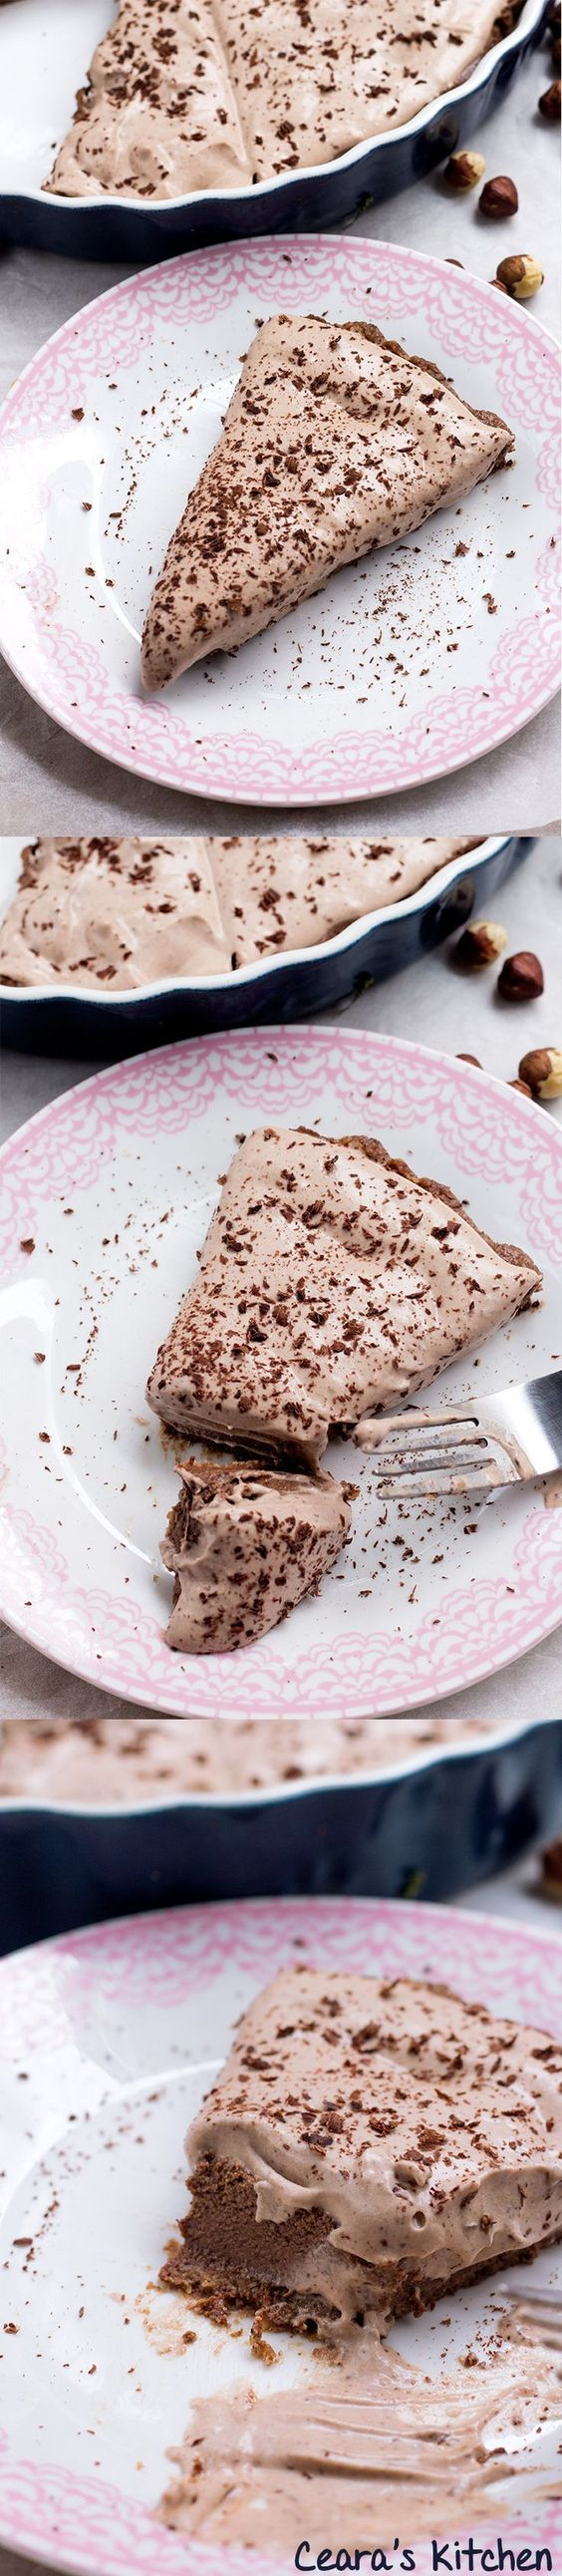 Vegan Chocolate Hazelnut Pie (Nutella Pie!) | Recipe ...